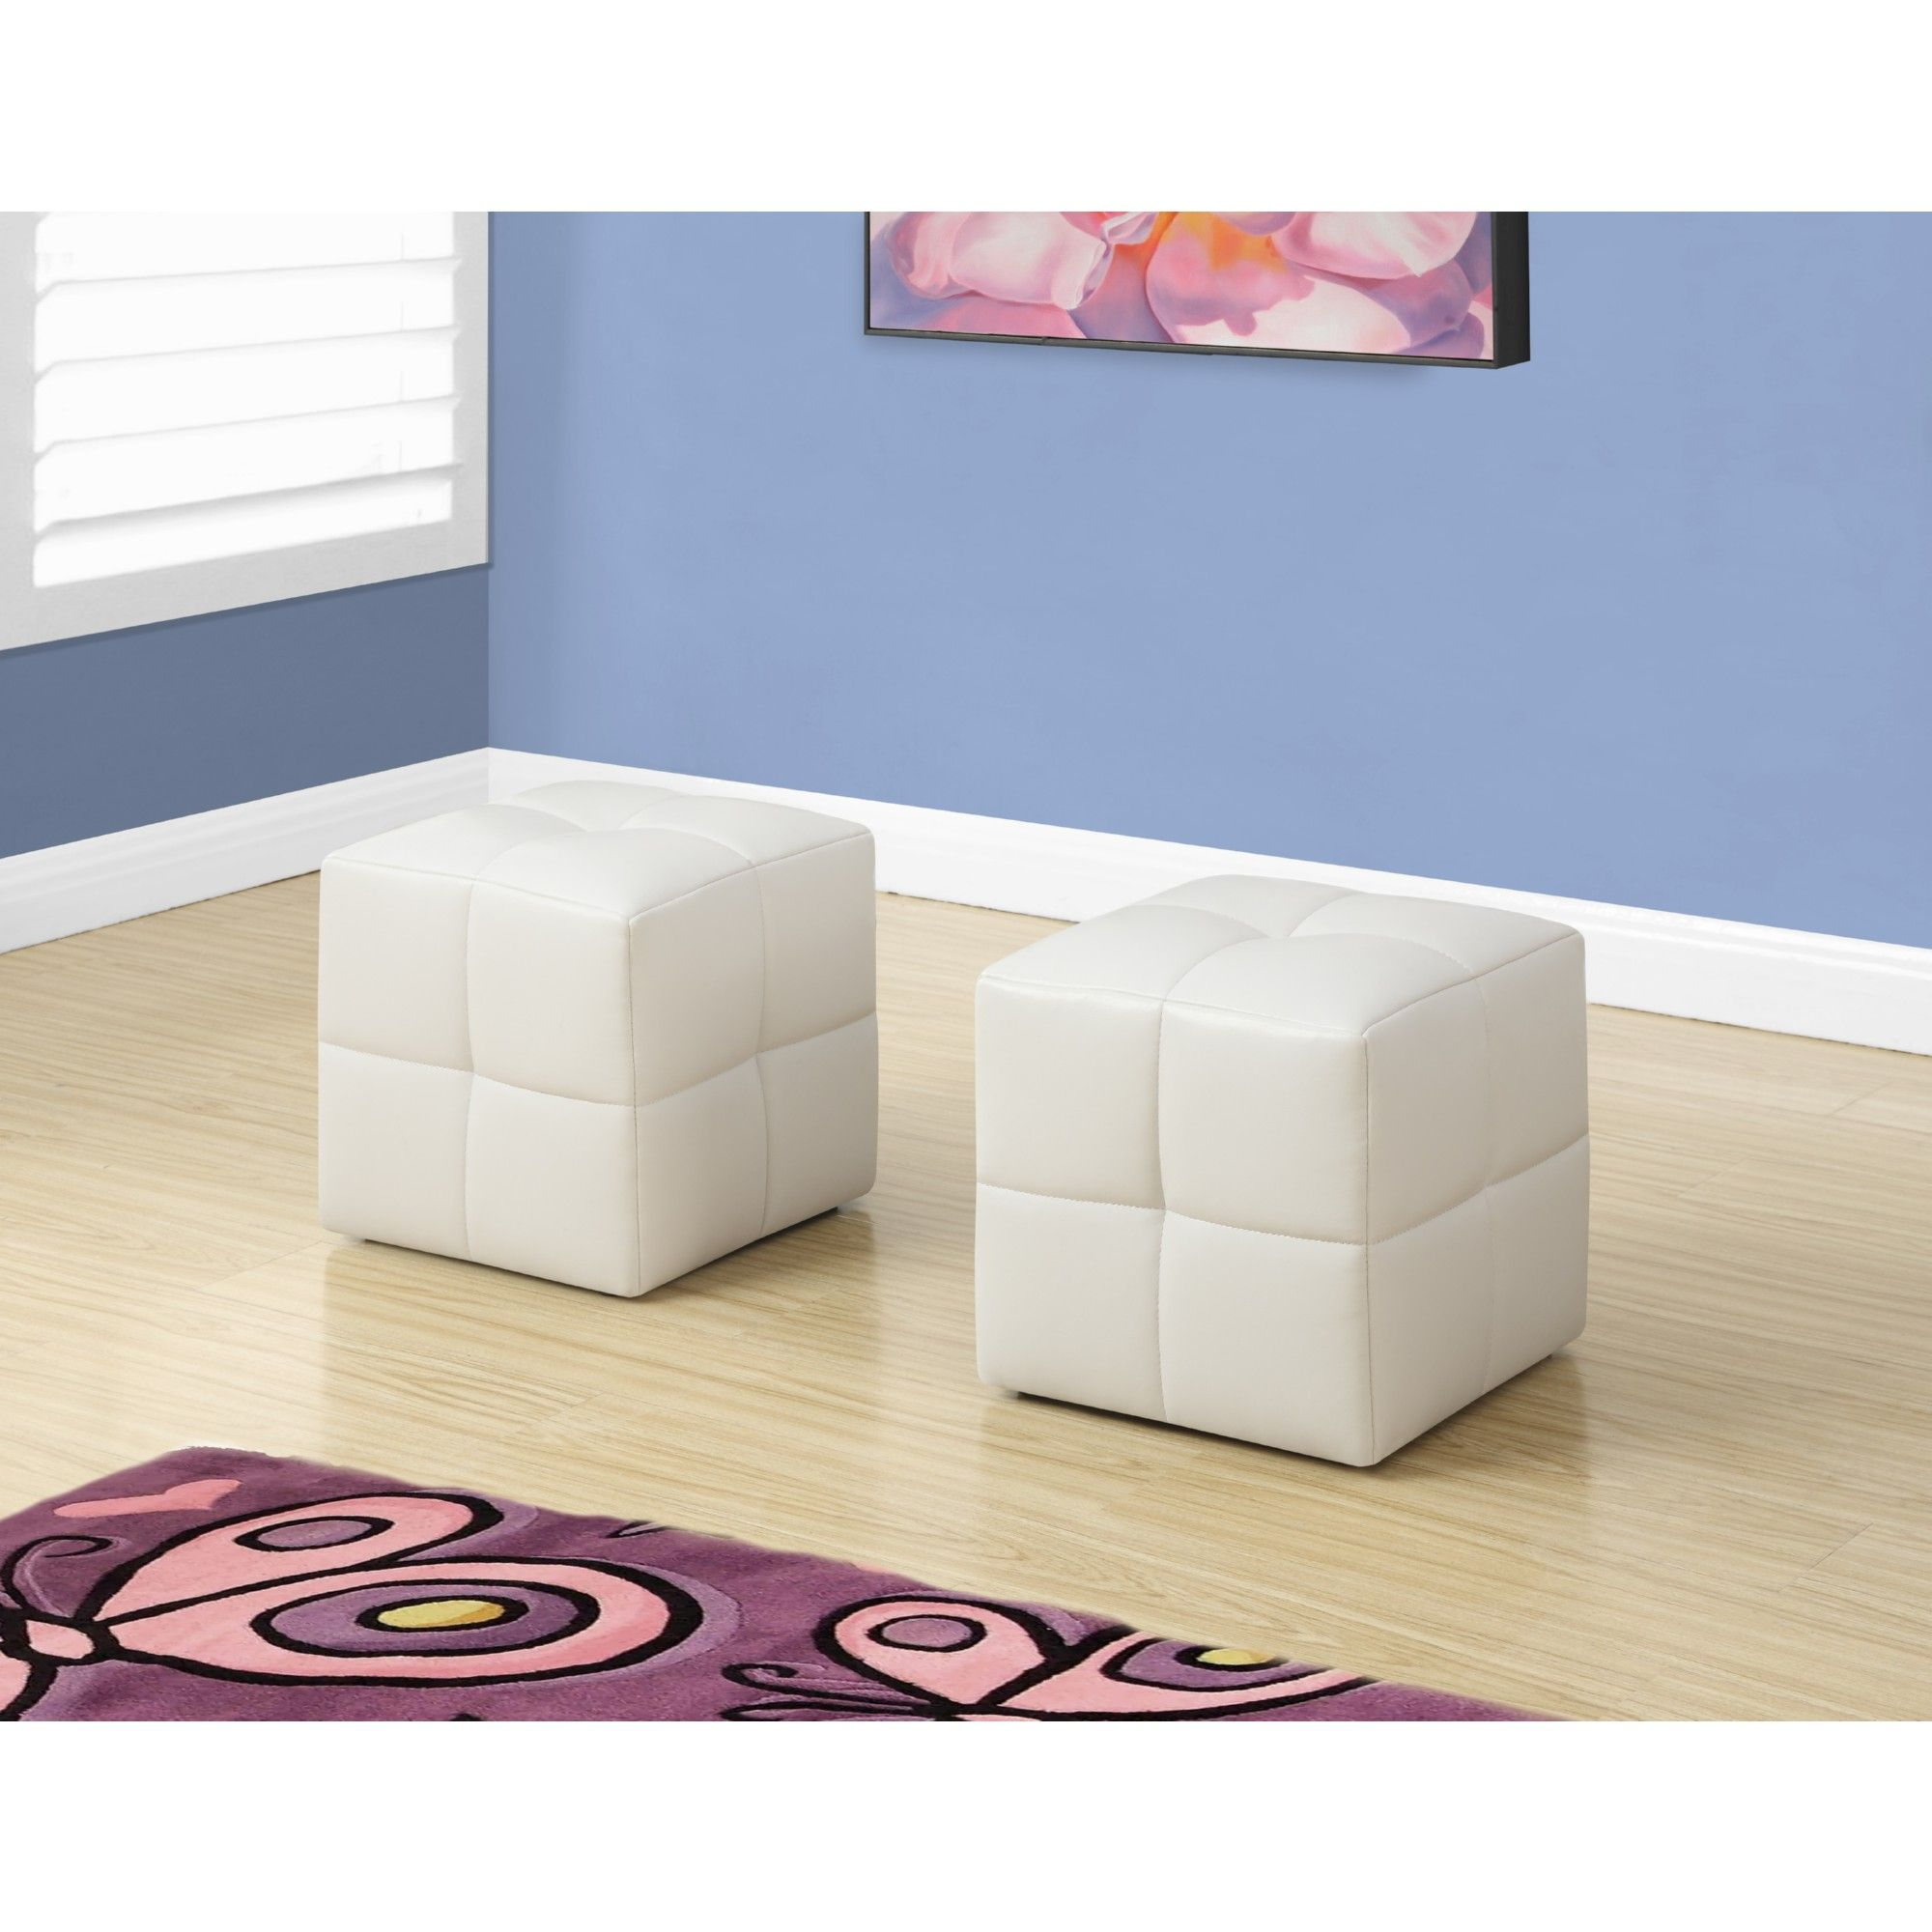 Wondrous Monrach 2 Piece Juvenile Ottoman Set White Leatherette In Onthecornerstone Fun Painted Chair Ideas Images Onthecornerstoneorg